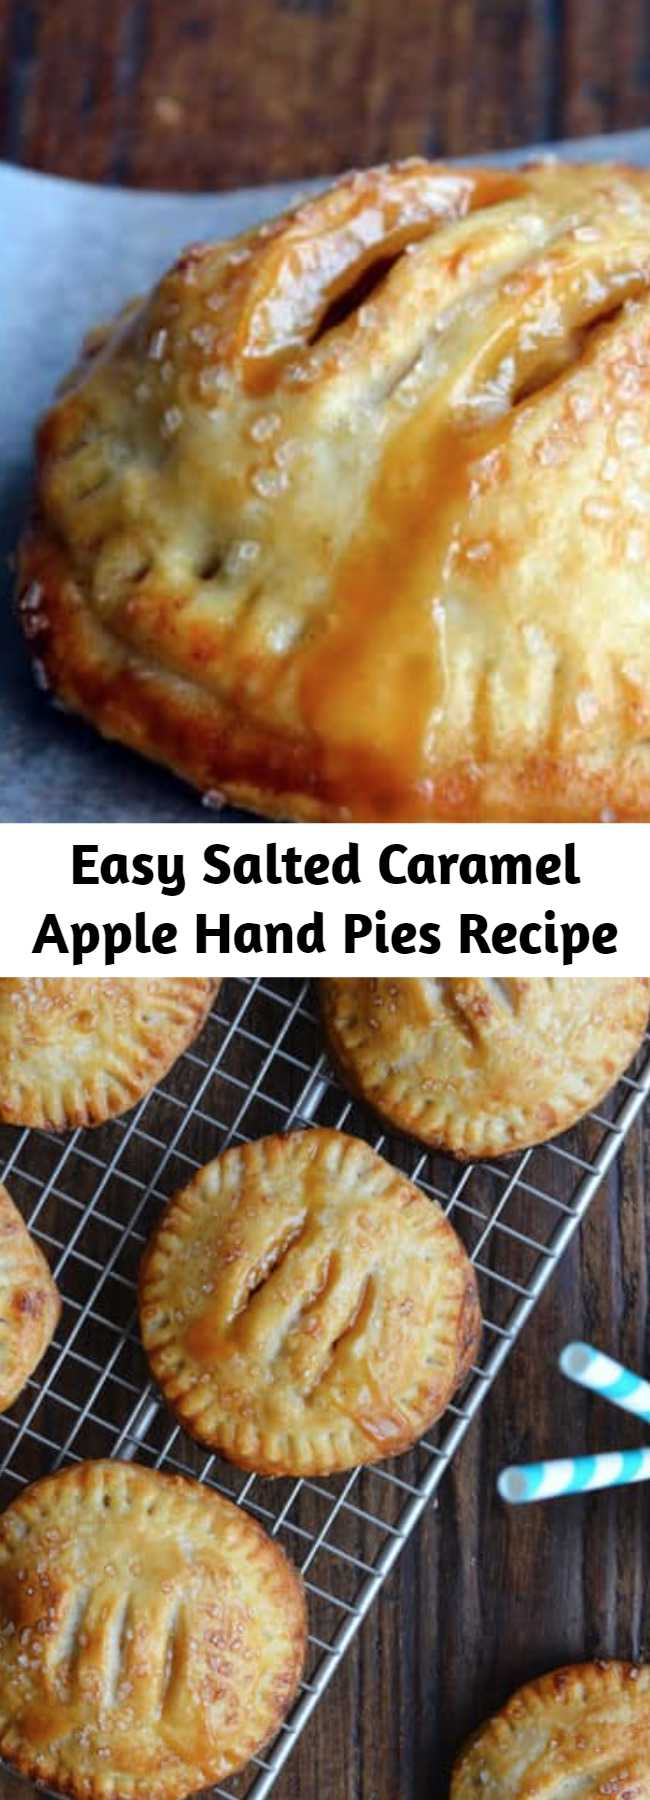 Easy Salted Caramel Apple Hand Pies Recipe - A pinch of sea salt lends a savory balance to these handheld treats that ooze fresh fruit flavor and silky smooth caramel. It's the dynamic dessert duo, and it's all wrapped up in finger-friendly package. No forks, no plates, no sharing required!